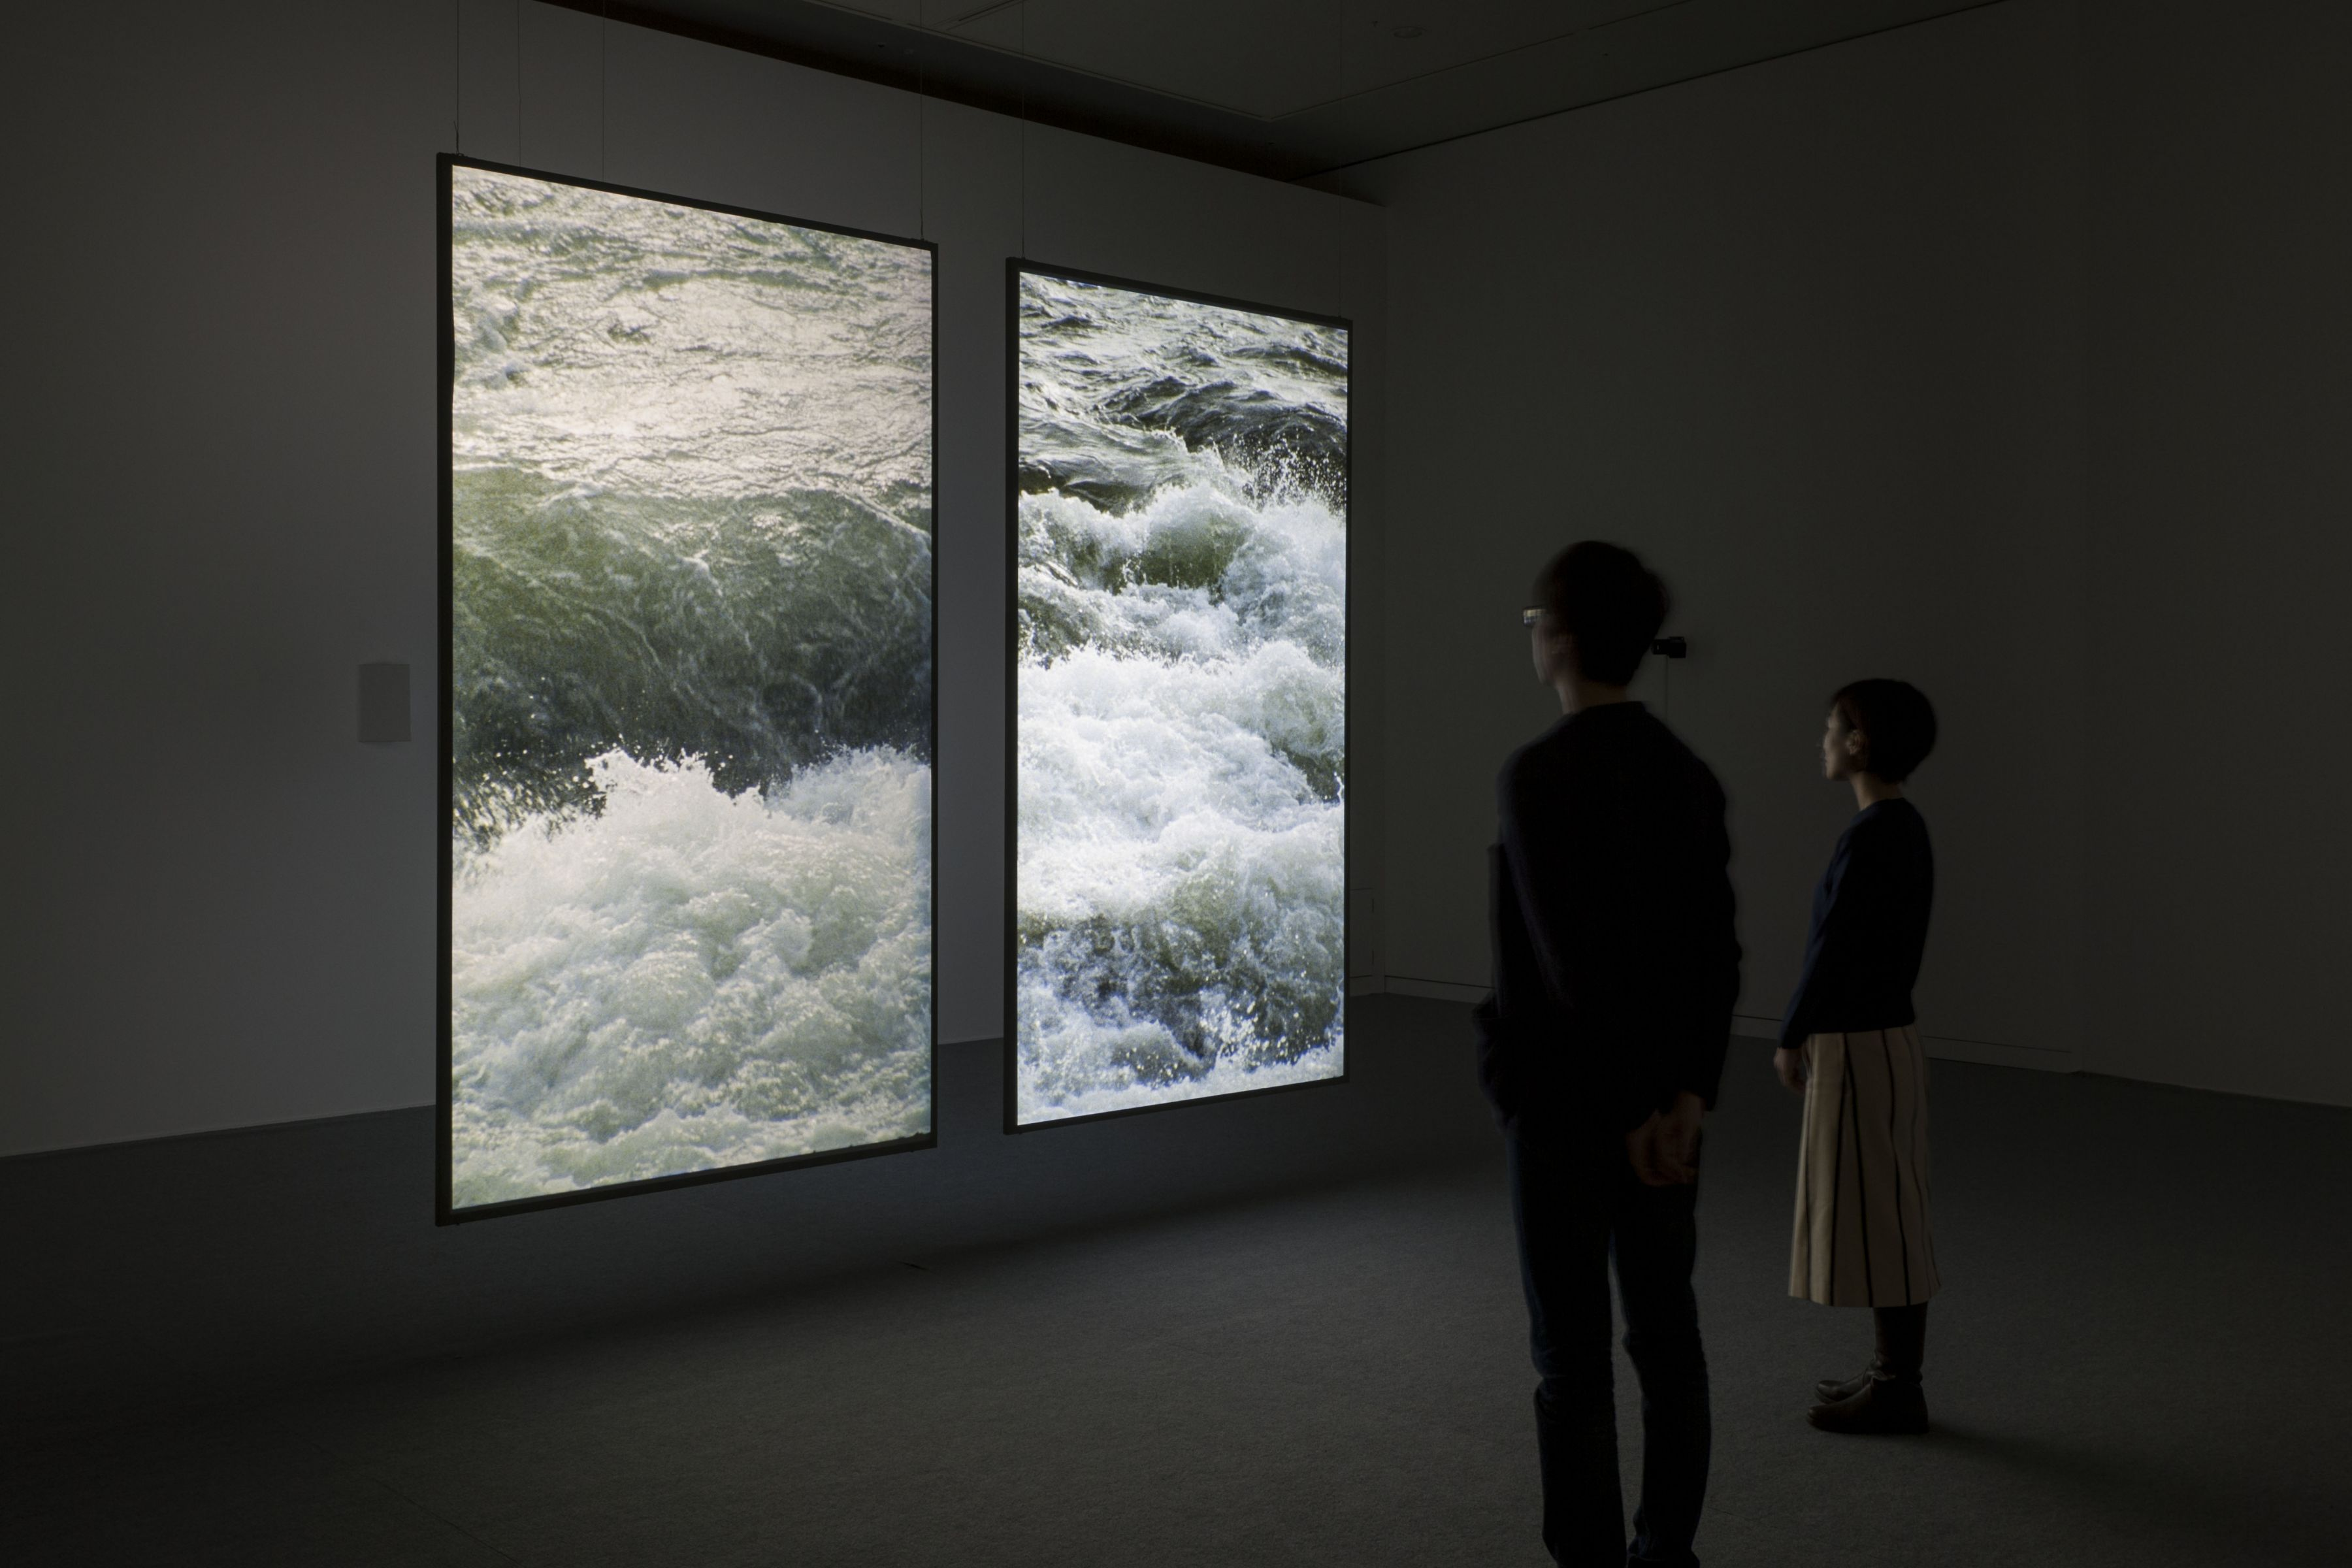 Rise and Fall - install 3